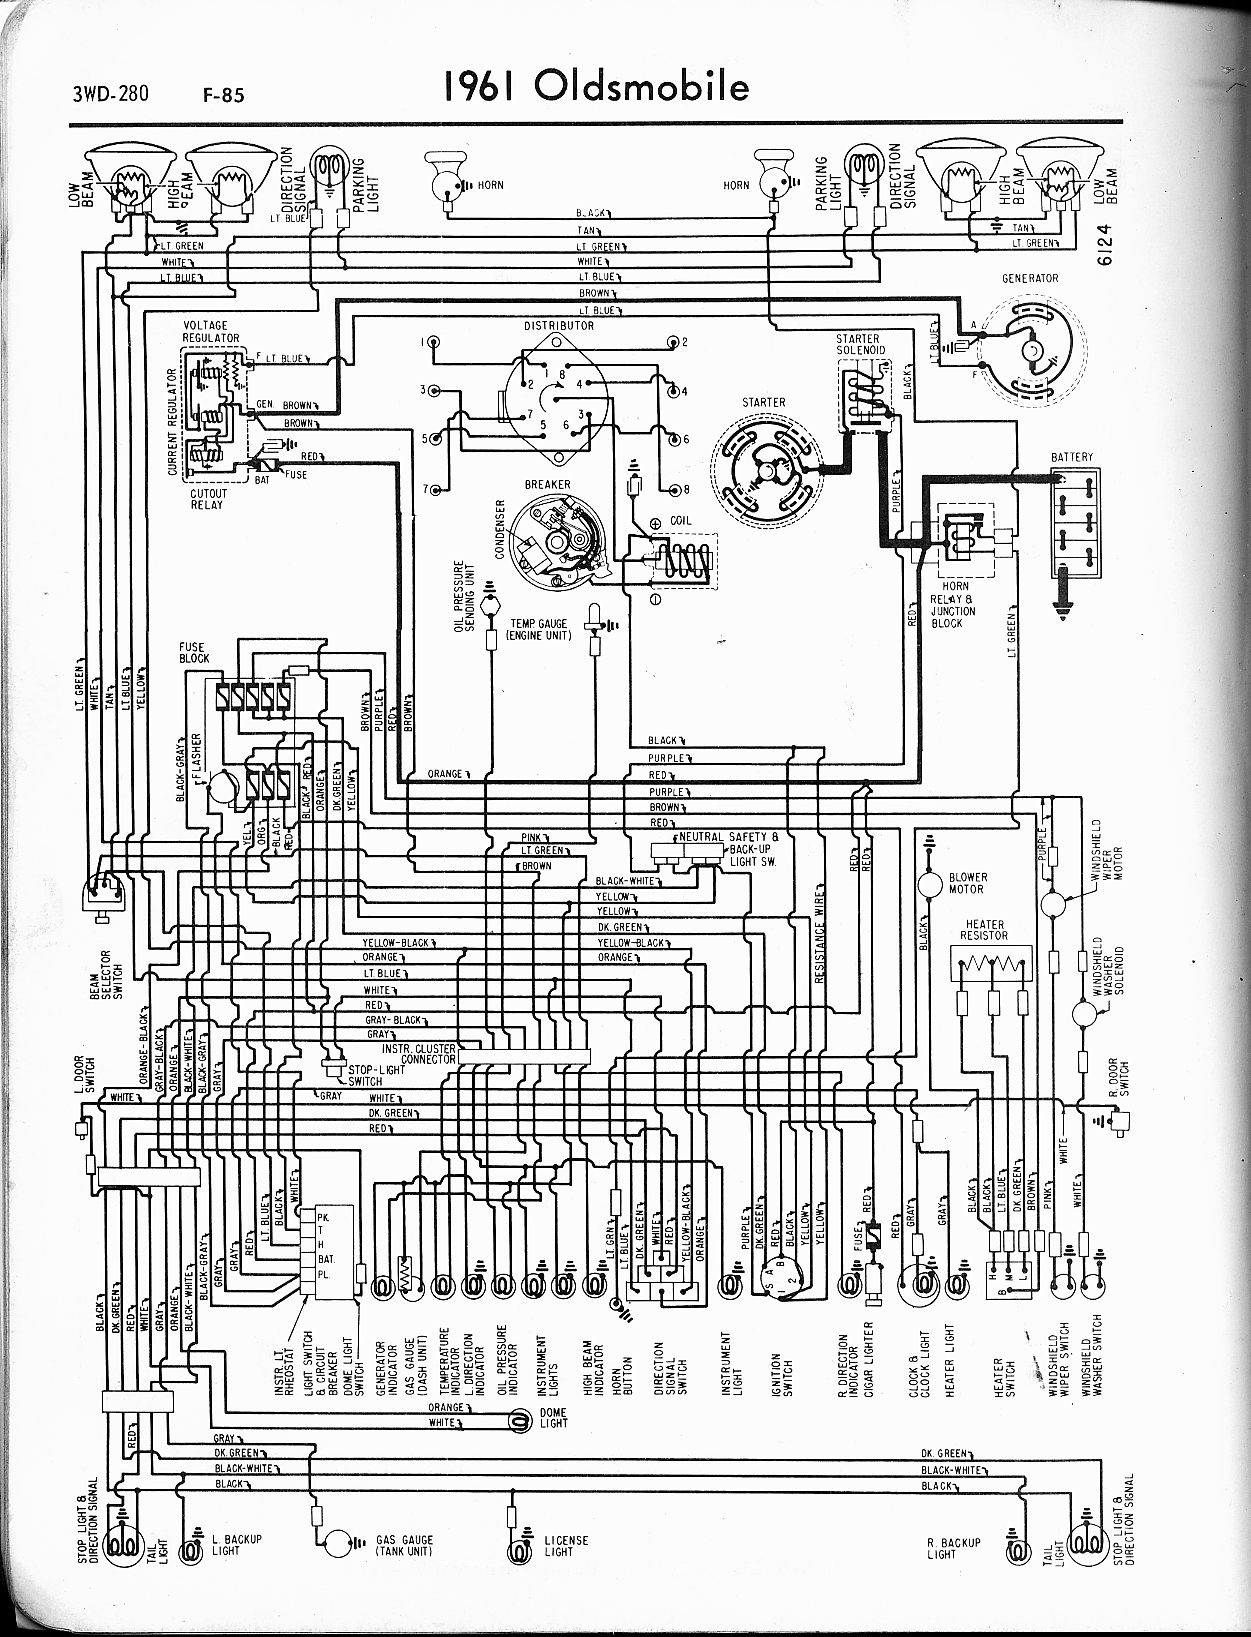 1970 Dodge D100 Wiring Diagram Library Diagrams Get Free Image About Also Home New 97 Olds 88 Fuel Pump